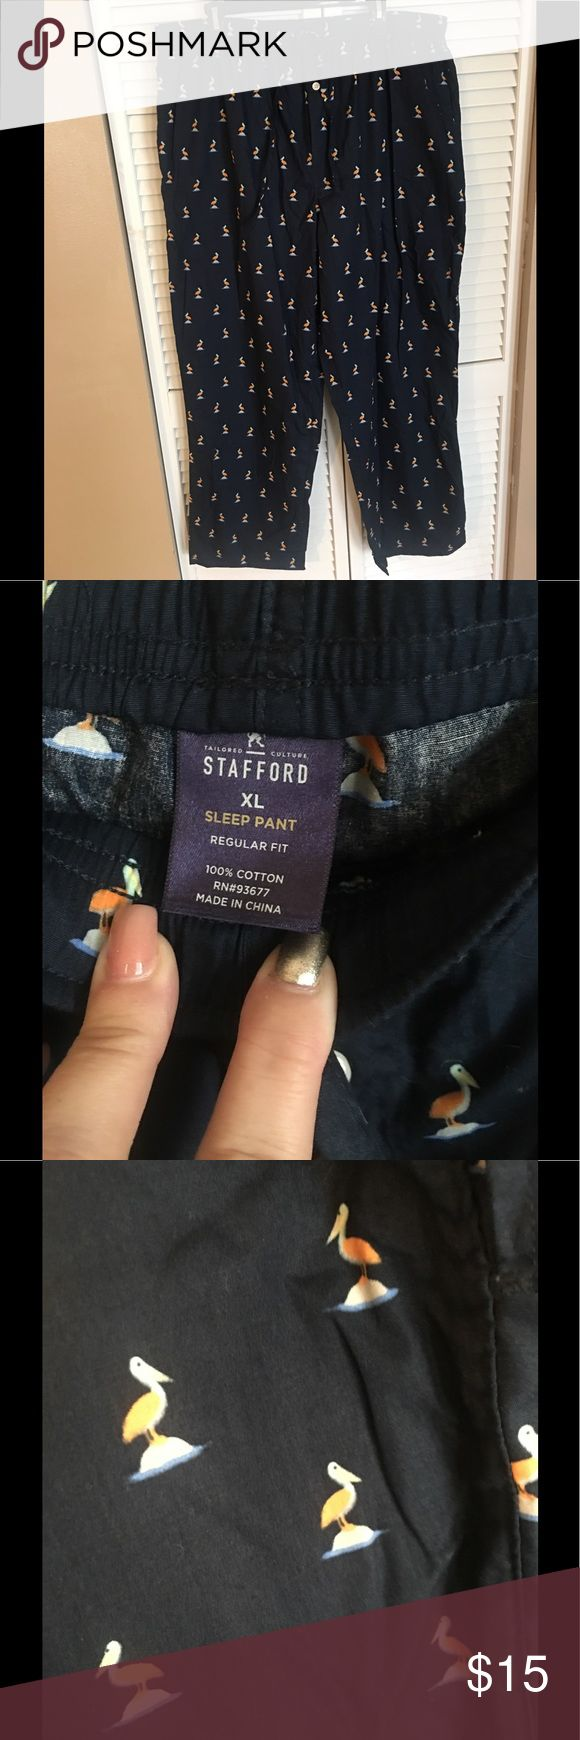 Just In ✨ Men's Stafford Pajama Pants Men's Pajama Pants 👖Navy Blue, Drawstring, XL, 100% Cotton. Purchased the wrong size for my son. NWOT ✨ Bundle and Save ✨ Reasonable Offers Welcomed Stafford Pants